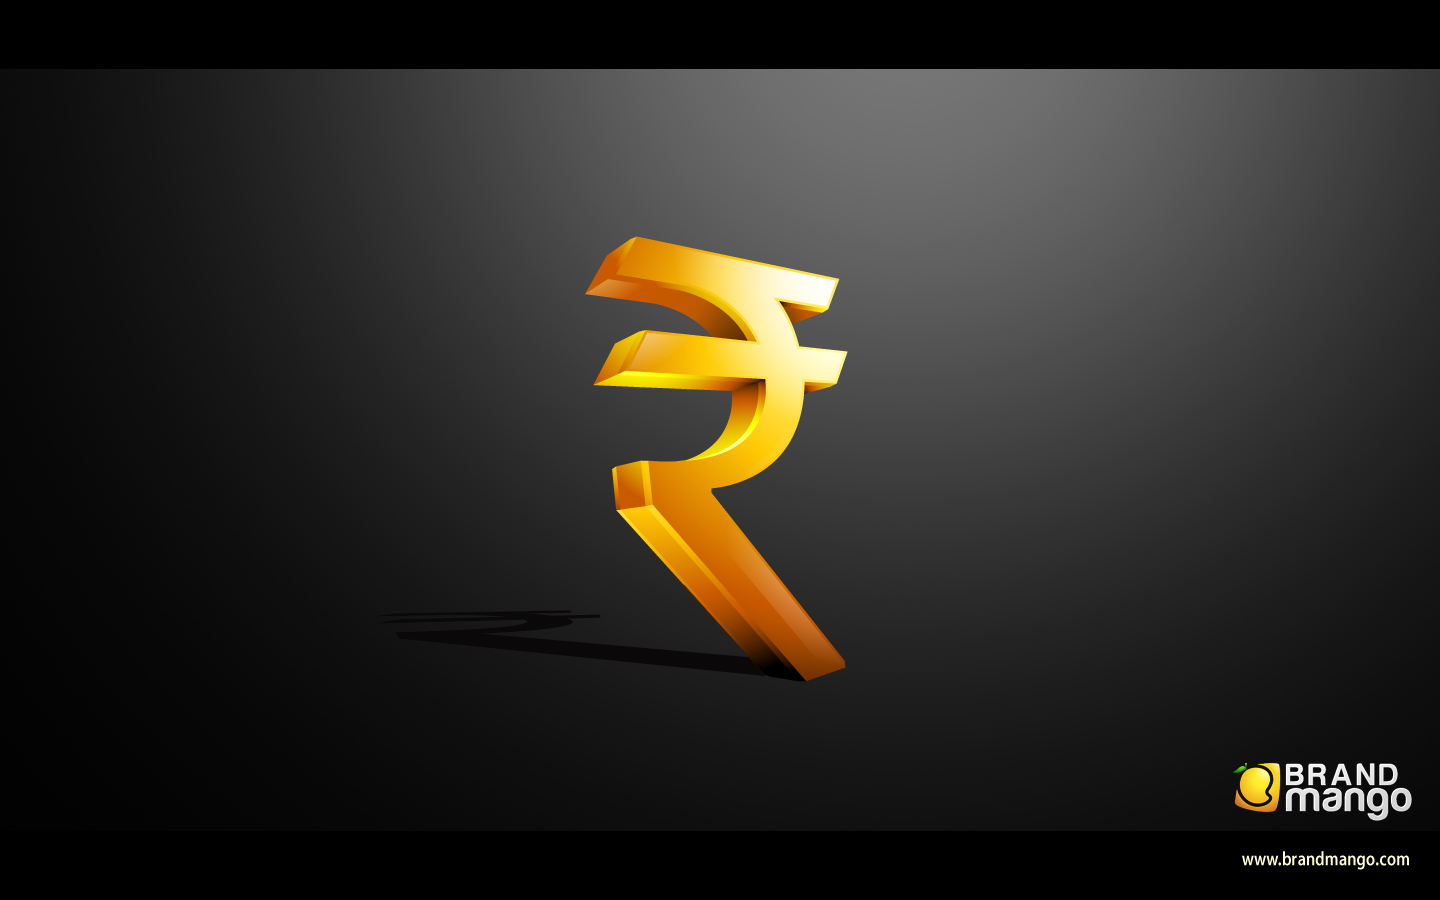 Dharbhar indian rupee symbol wallpapers here are they biocorpaavc